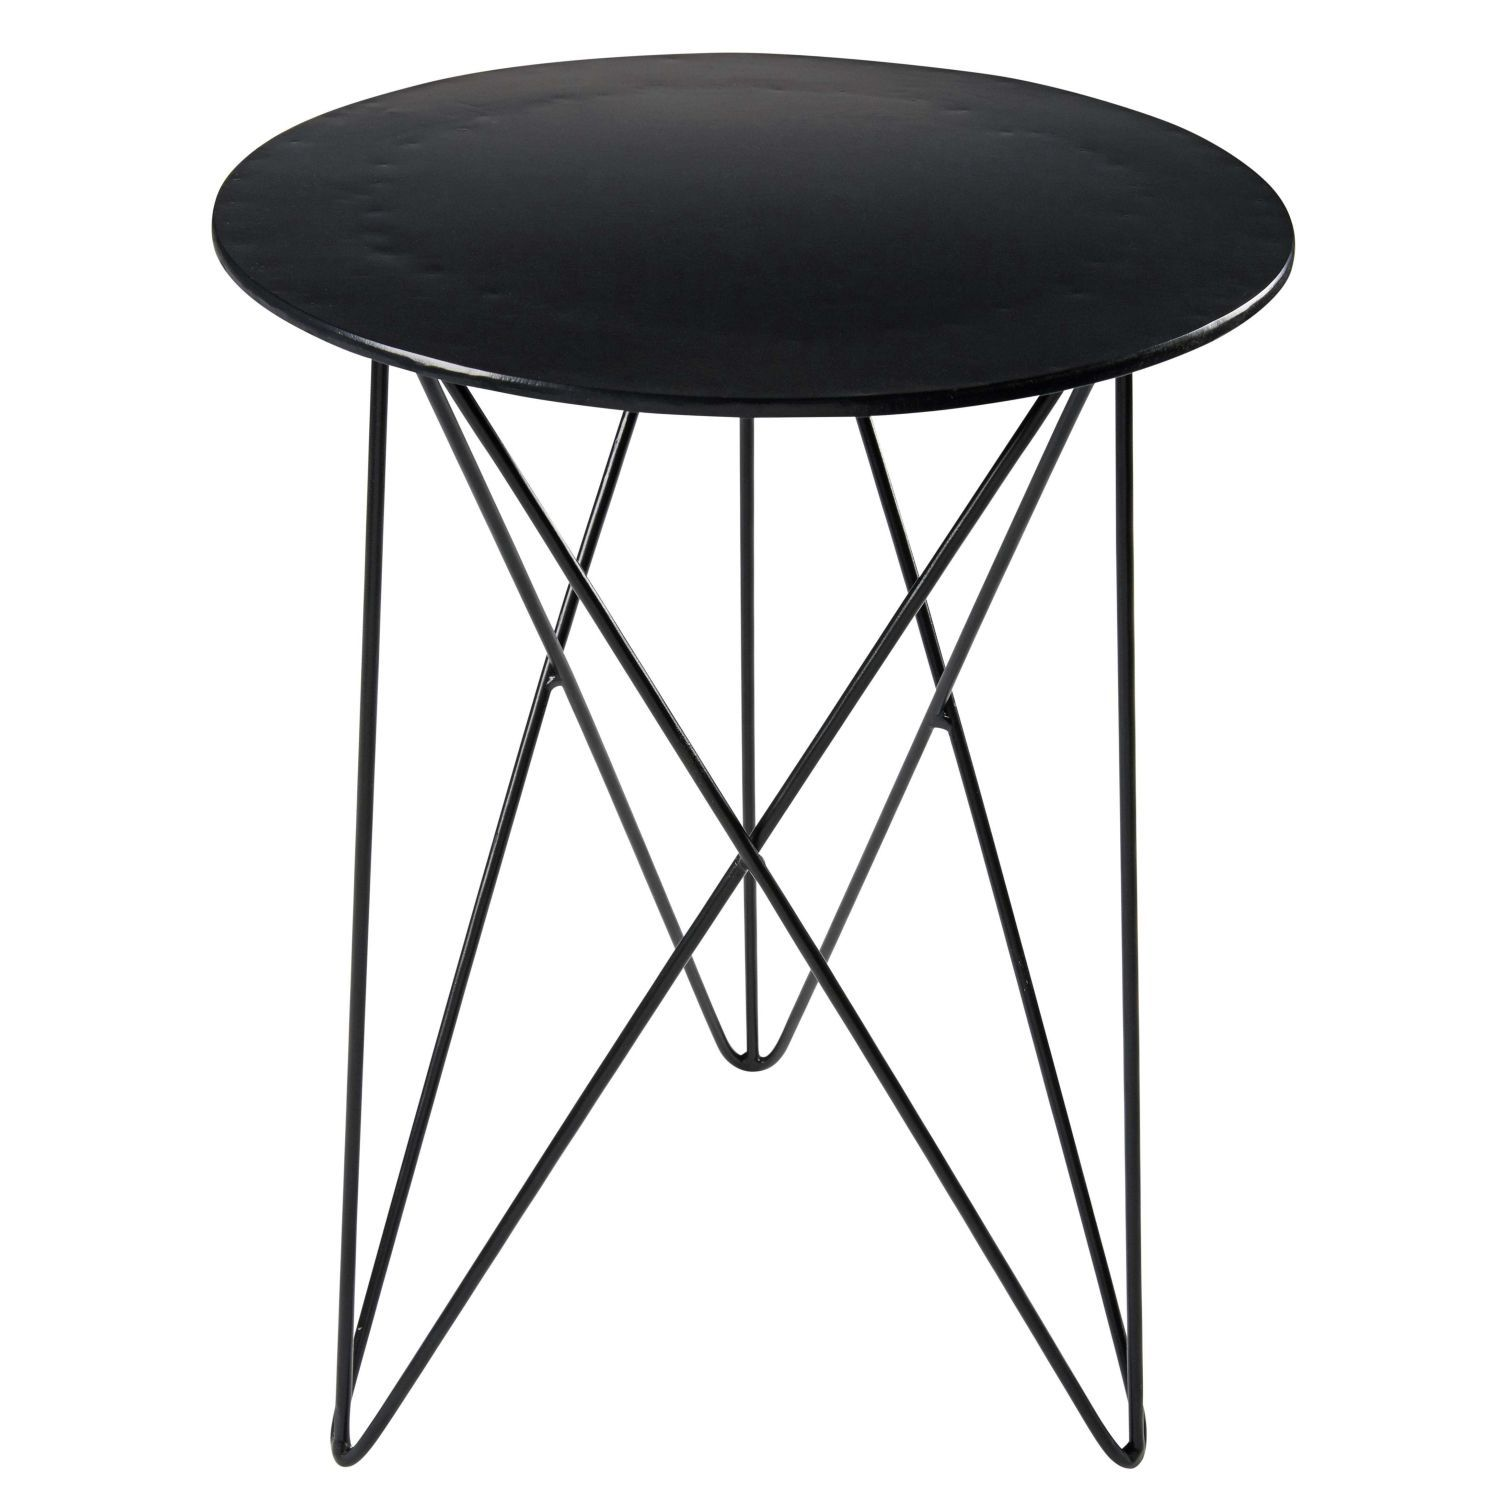 Black Metal Side Table Beistelltisch Metall Schwarz